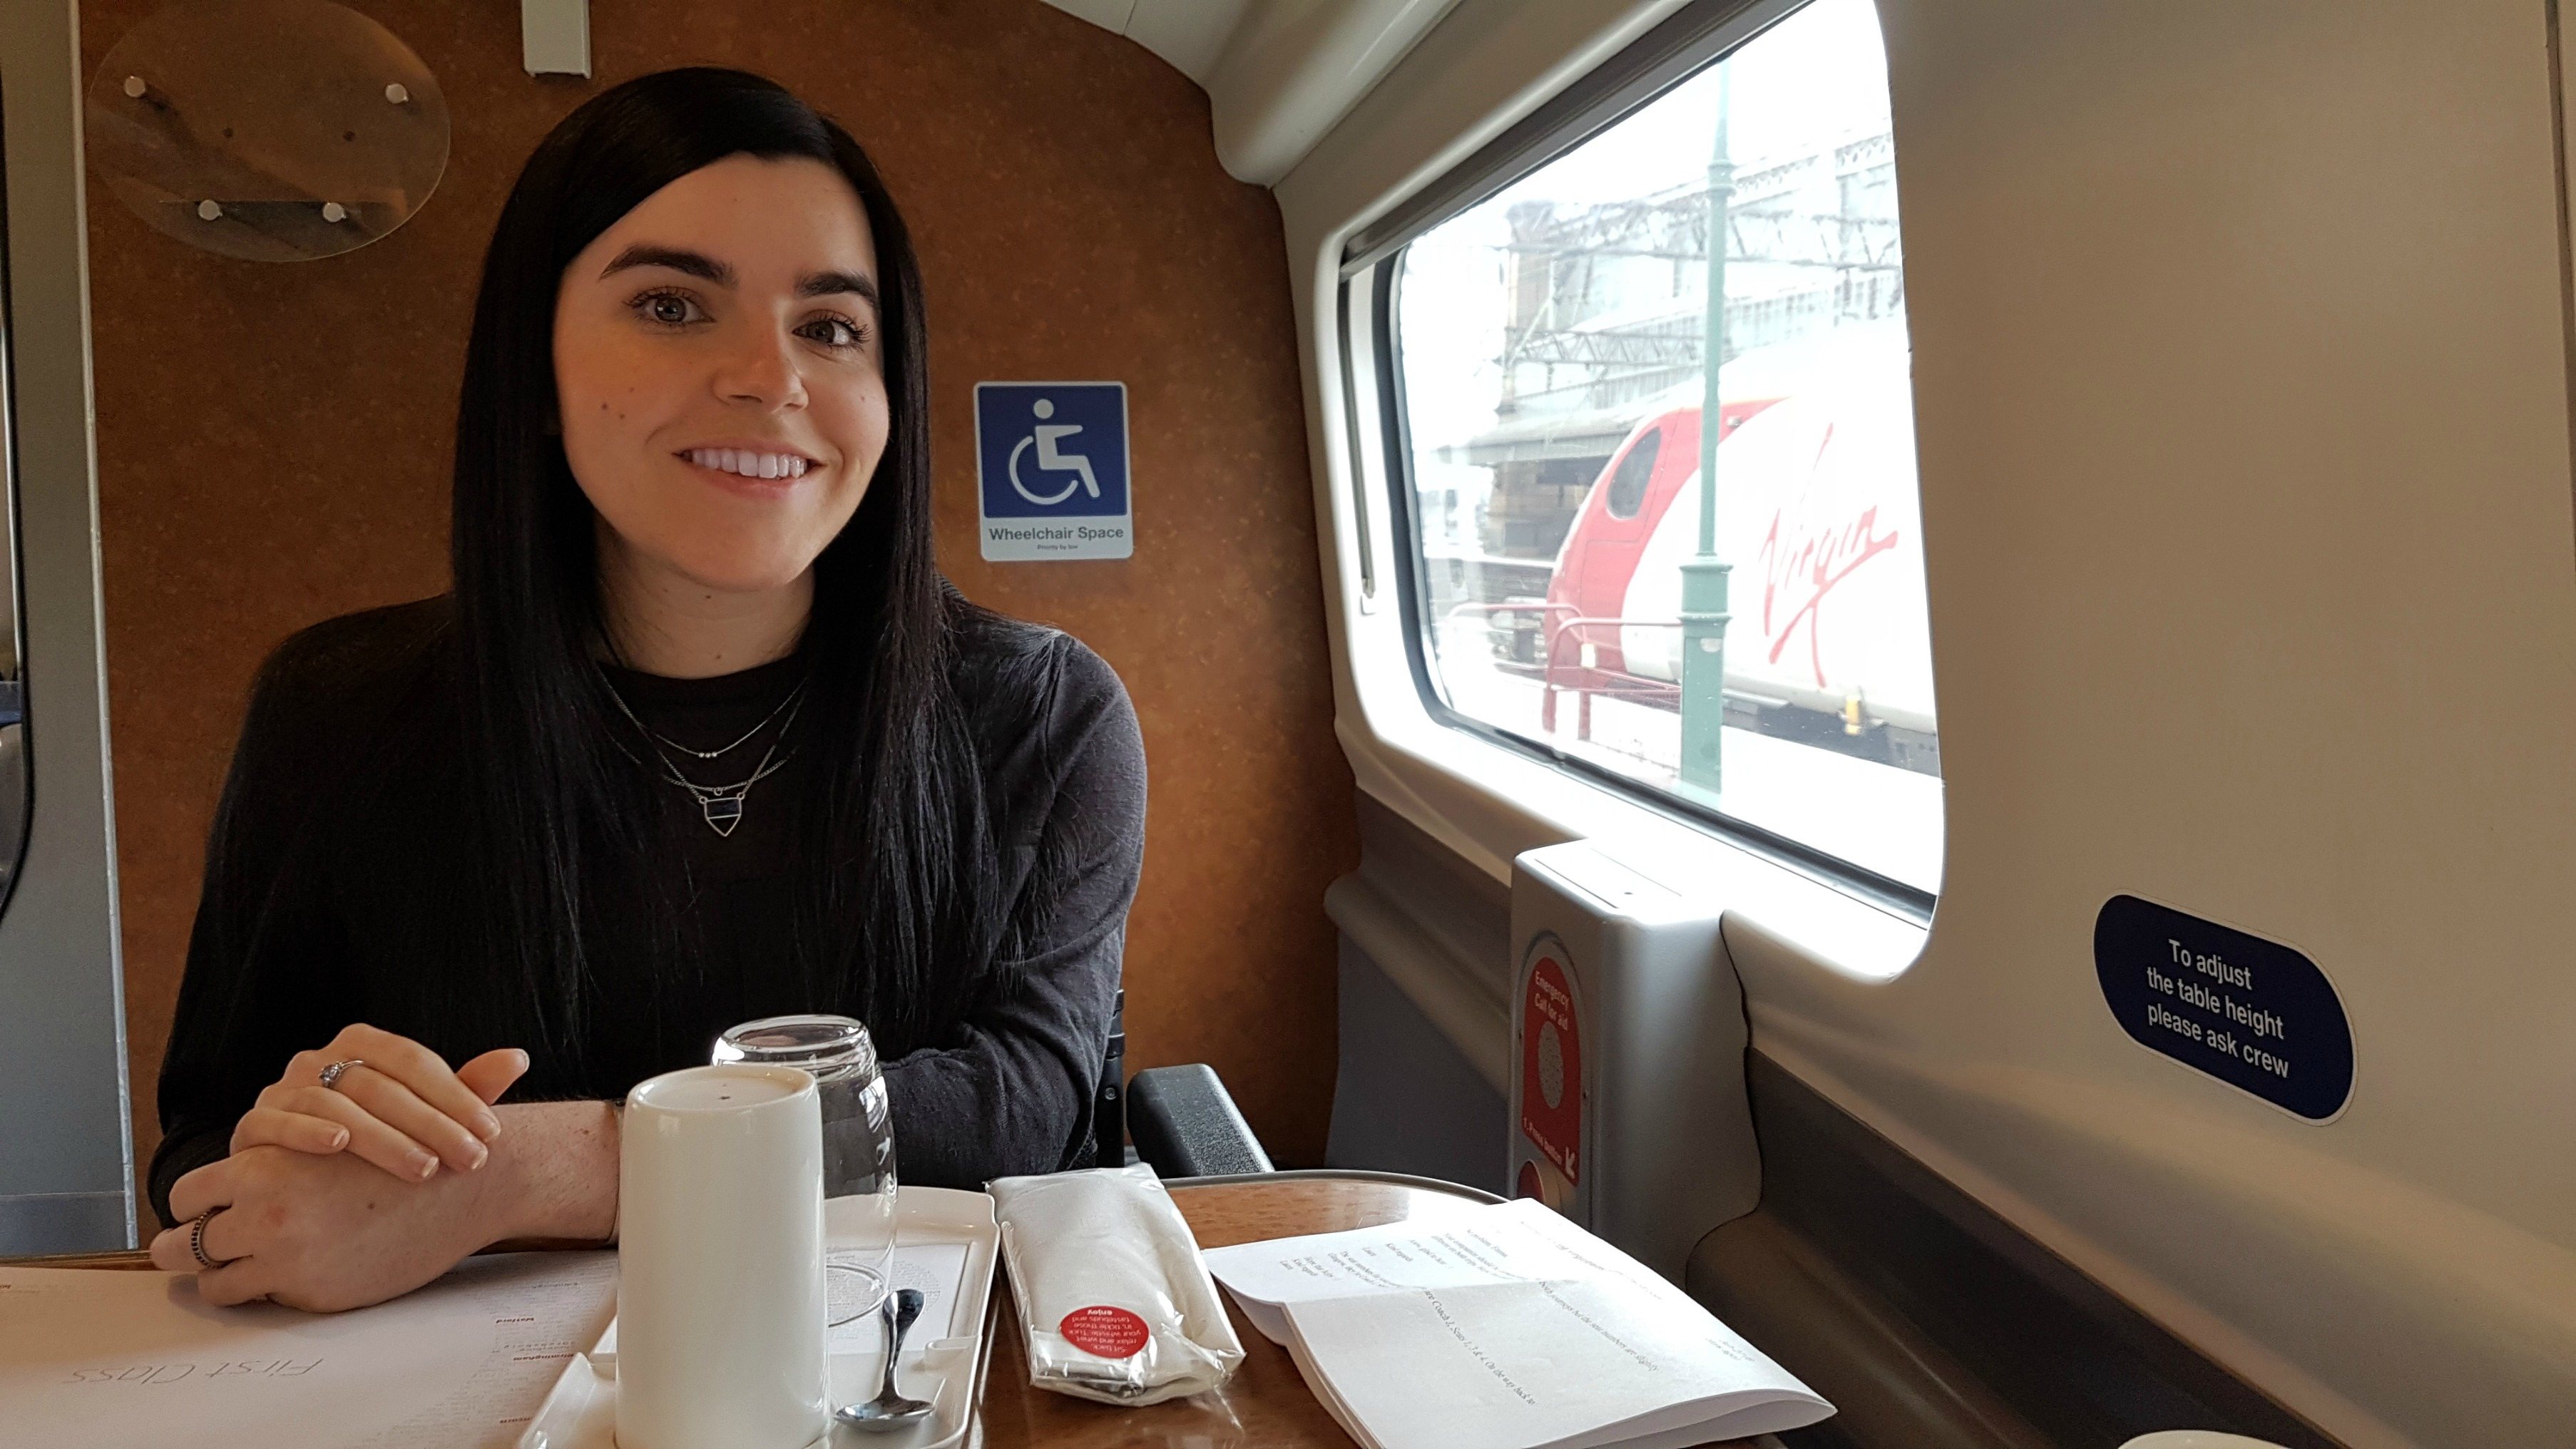 Virgin Trains first class wheelchair accessible seat onboard